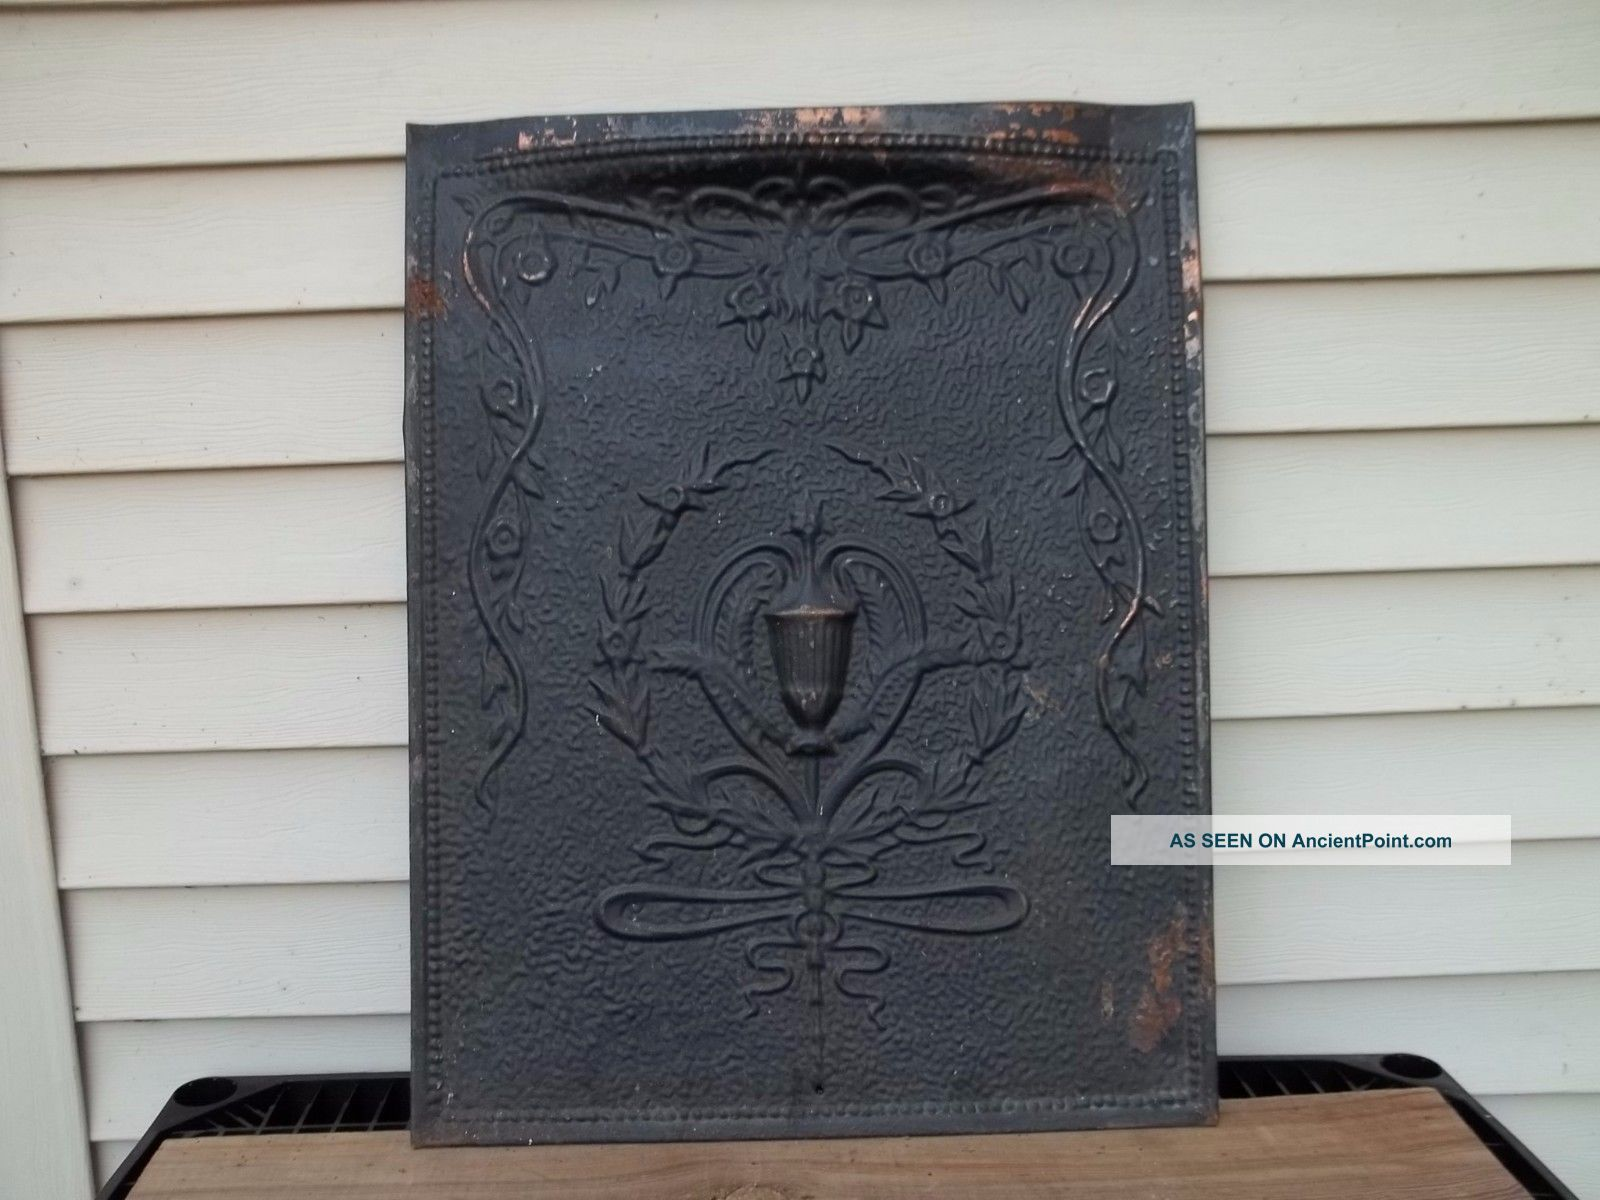 Antique Tin Fireplace Cover Screen Embossed Victorian Design Decor Vintage Fireplaces & Mantels photo